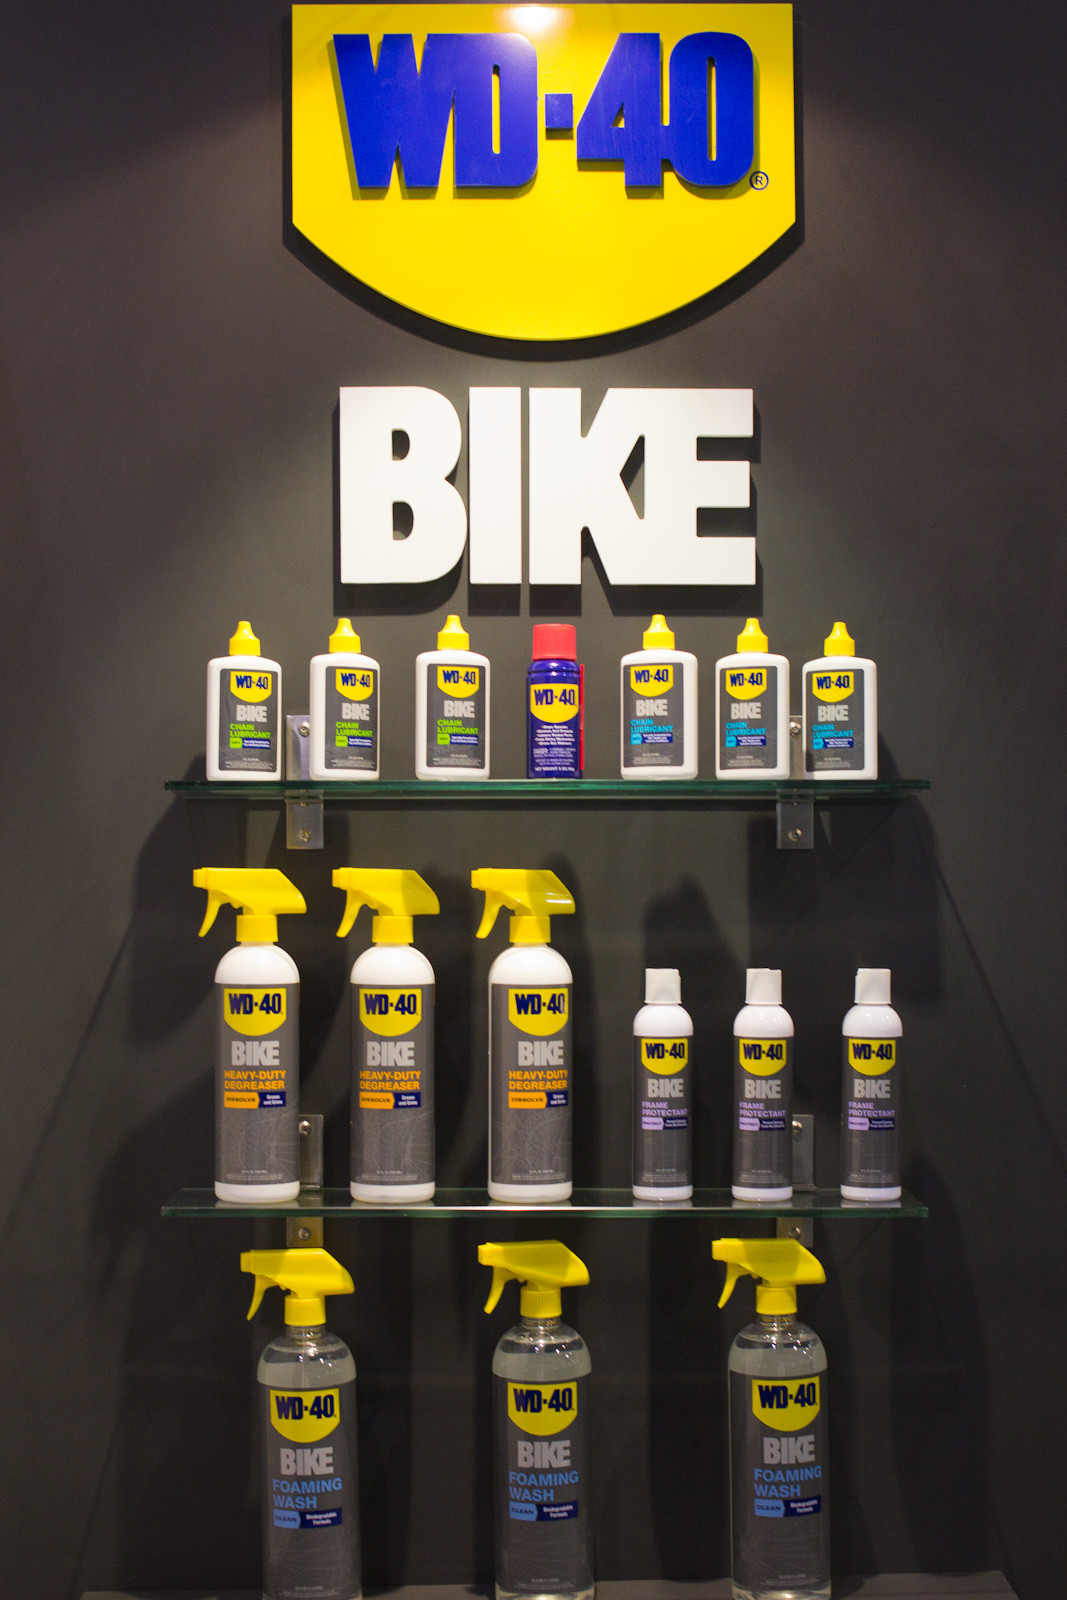 WD-40 Bike Cleaners, Lubes and Protectants - 2013 Products from Interbike 2012, Part 2 - Mountain Biking Pictures - Vital MTB